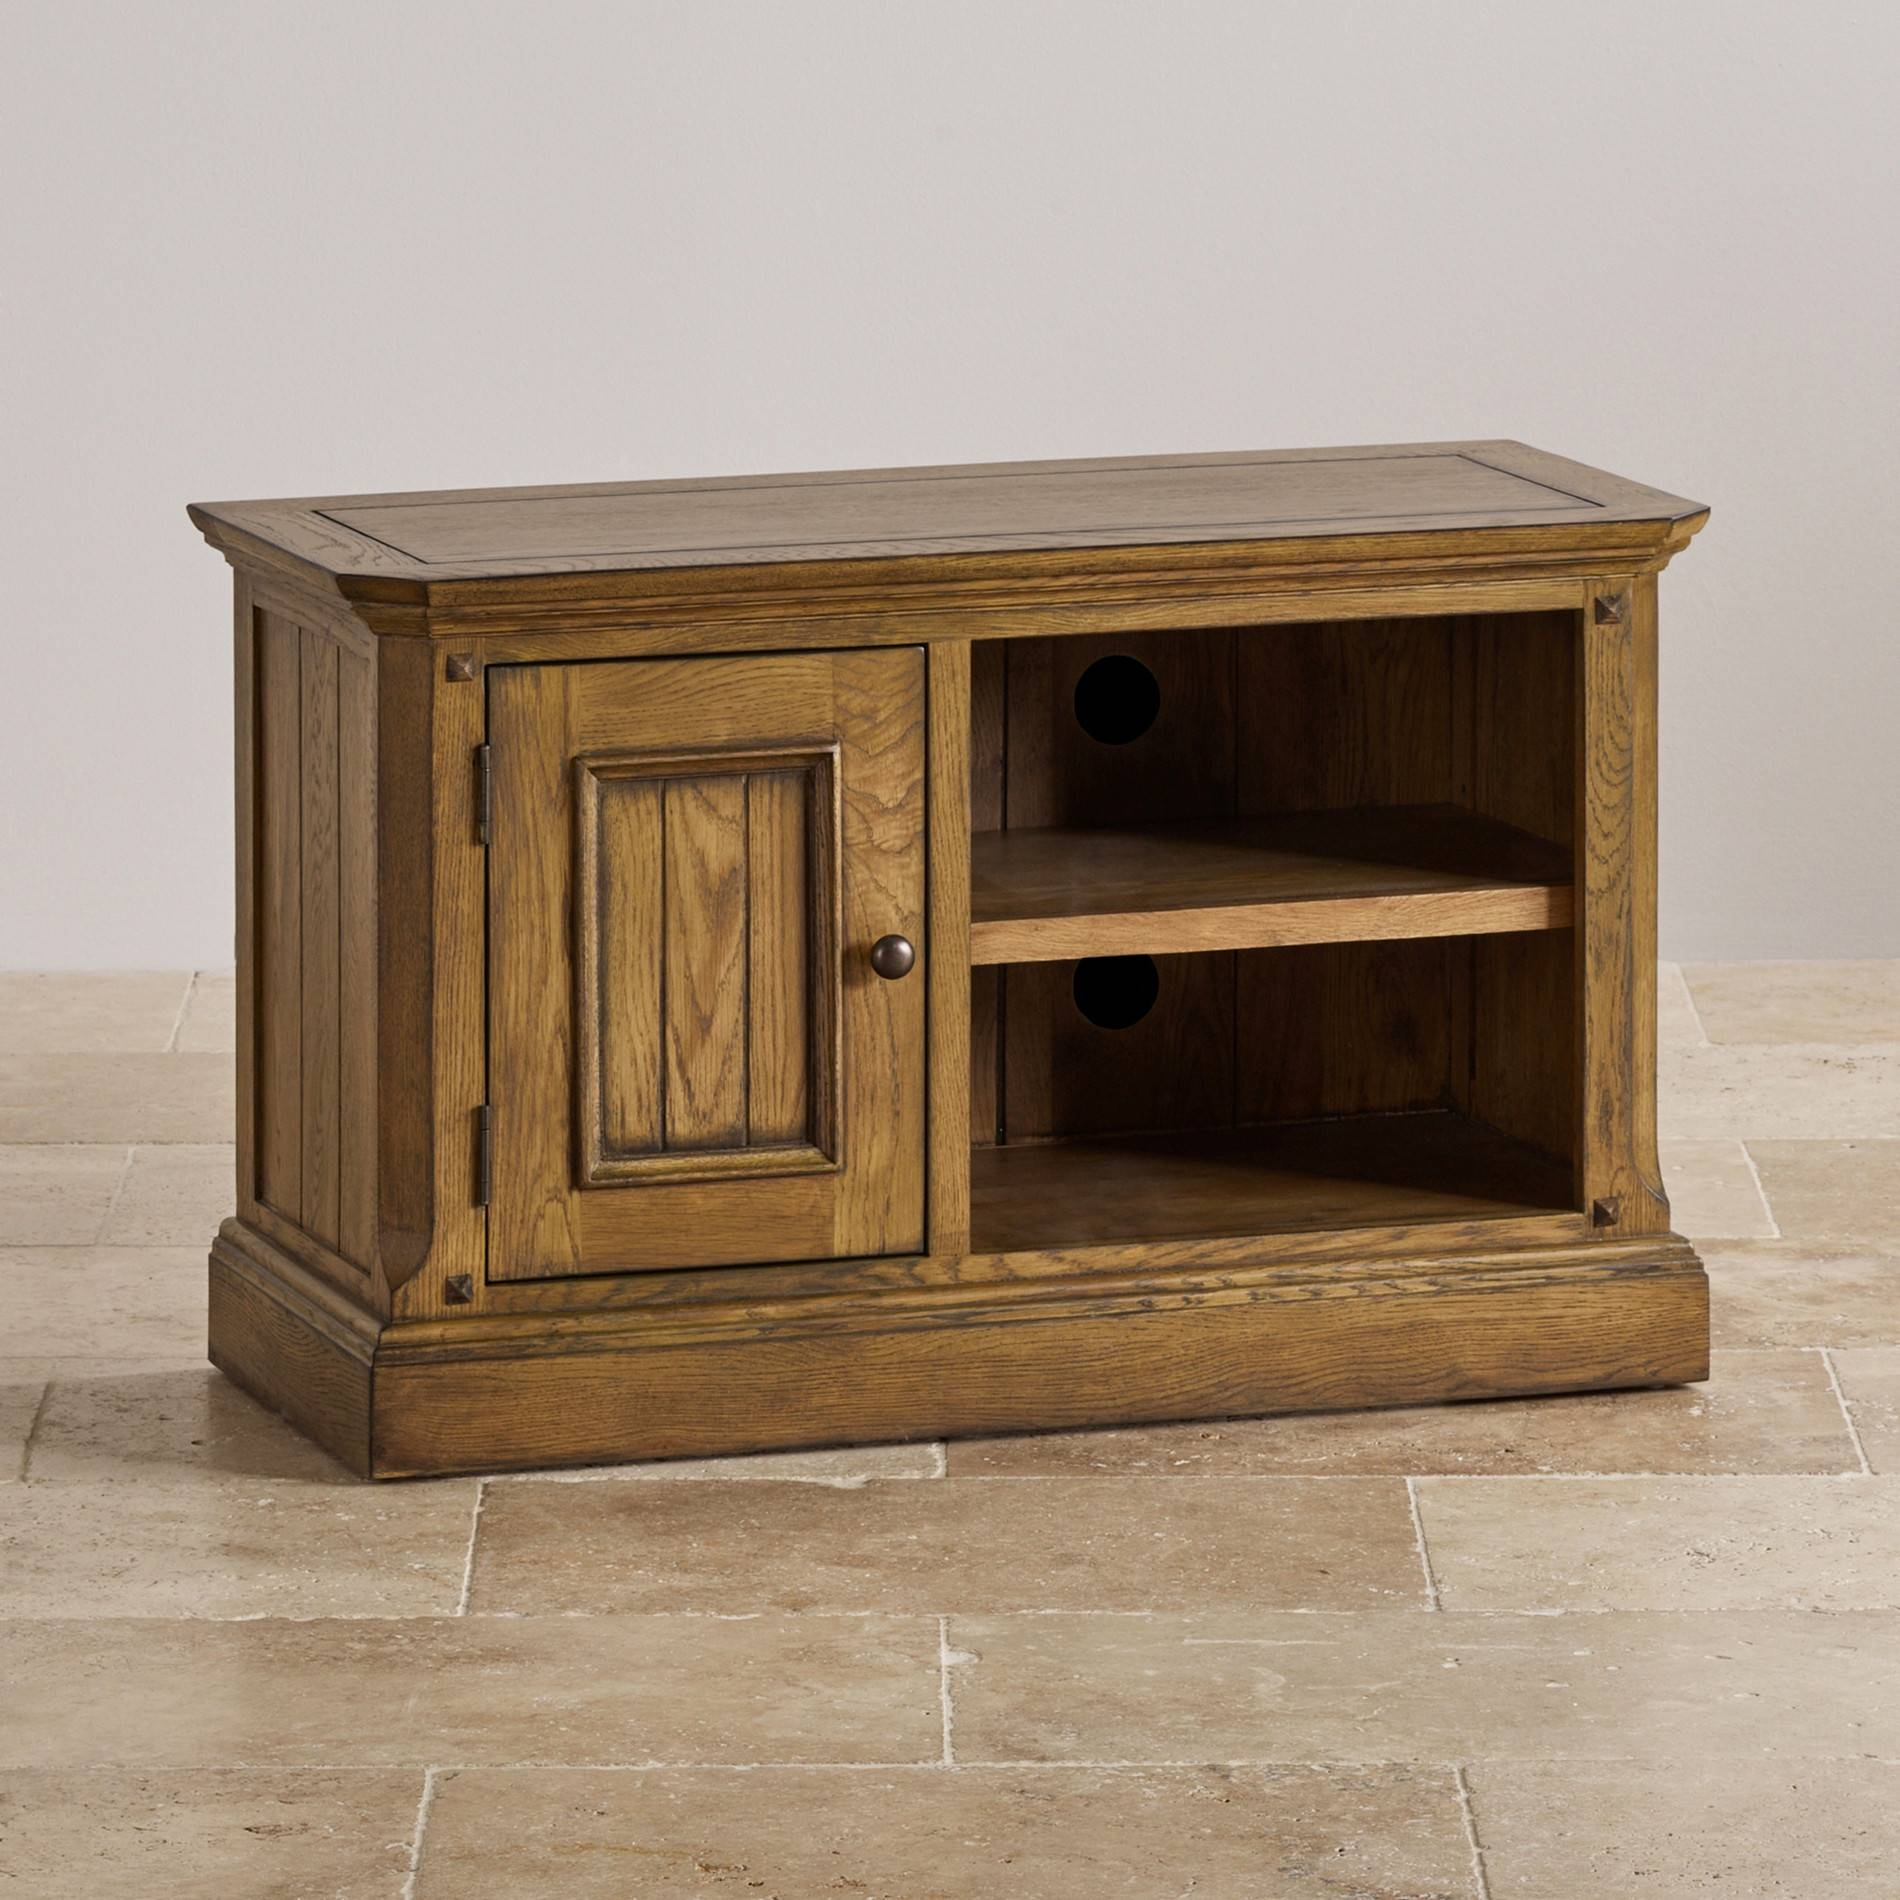 Manor House Small Tv Unit In Solid Oak | Oak Furniture Land Inside Small Oak Tv Cabinets (View 9 of 15)